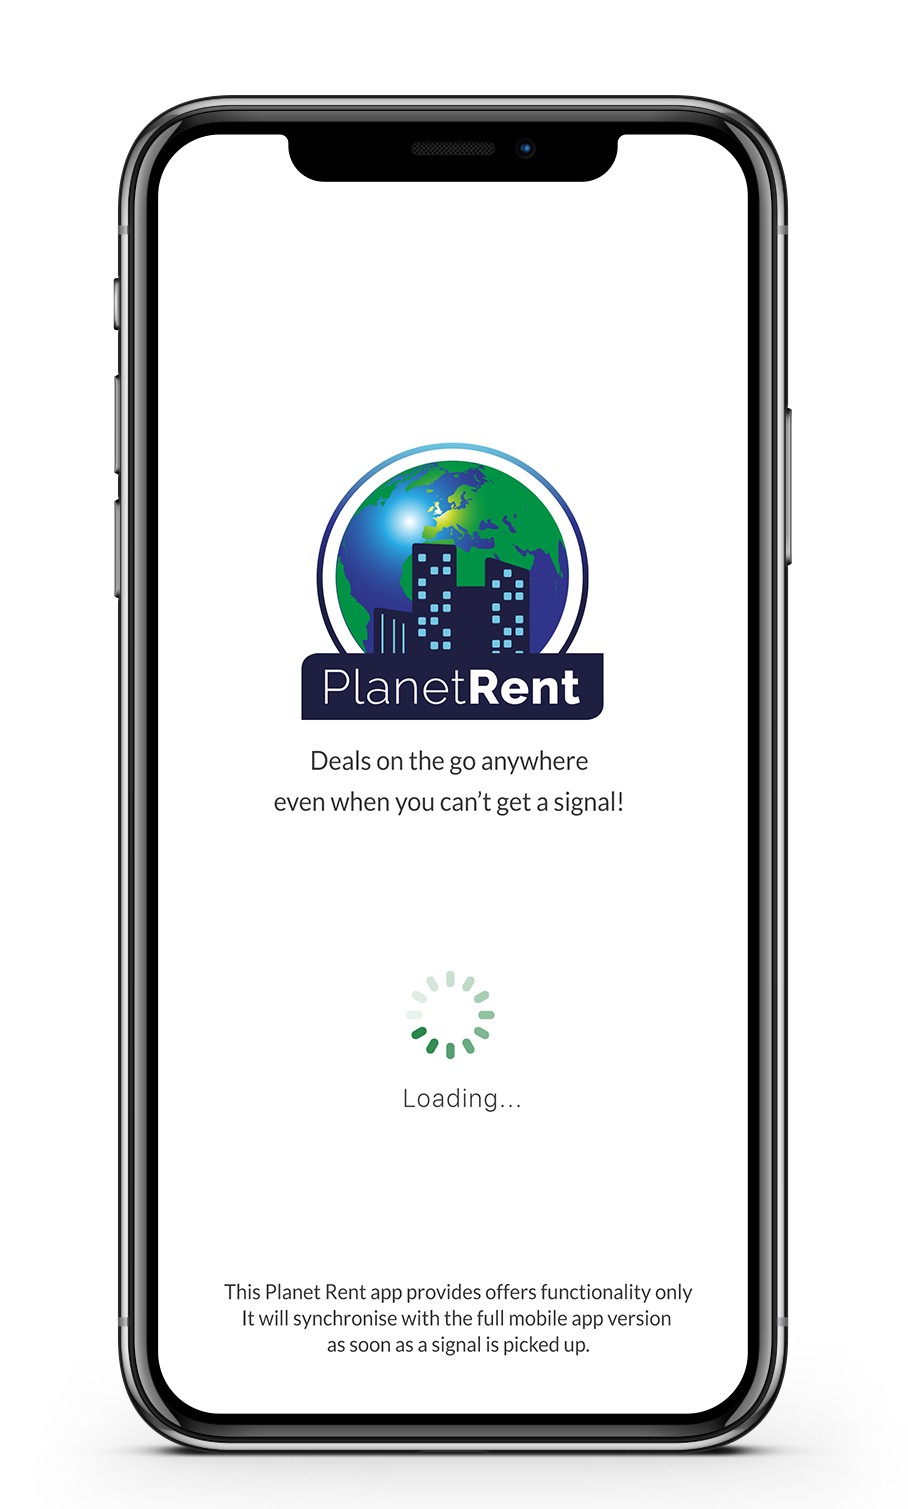 Build to rent planetrent app